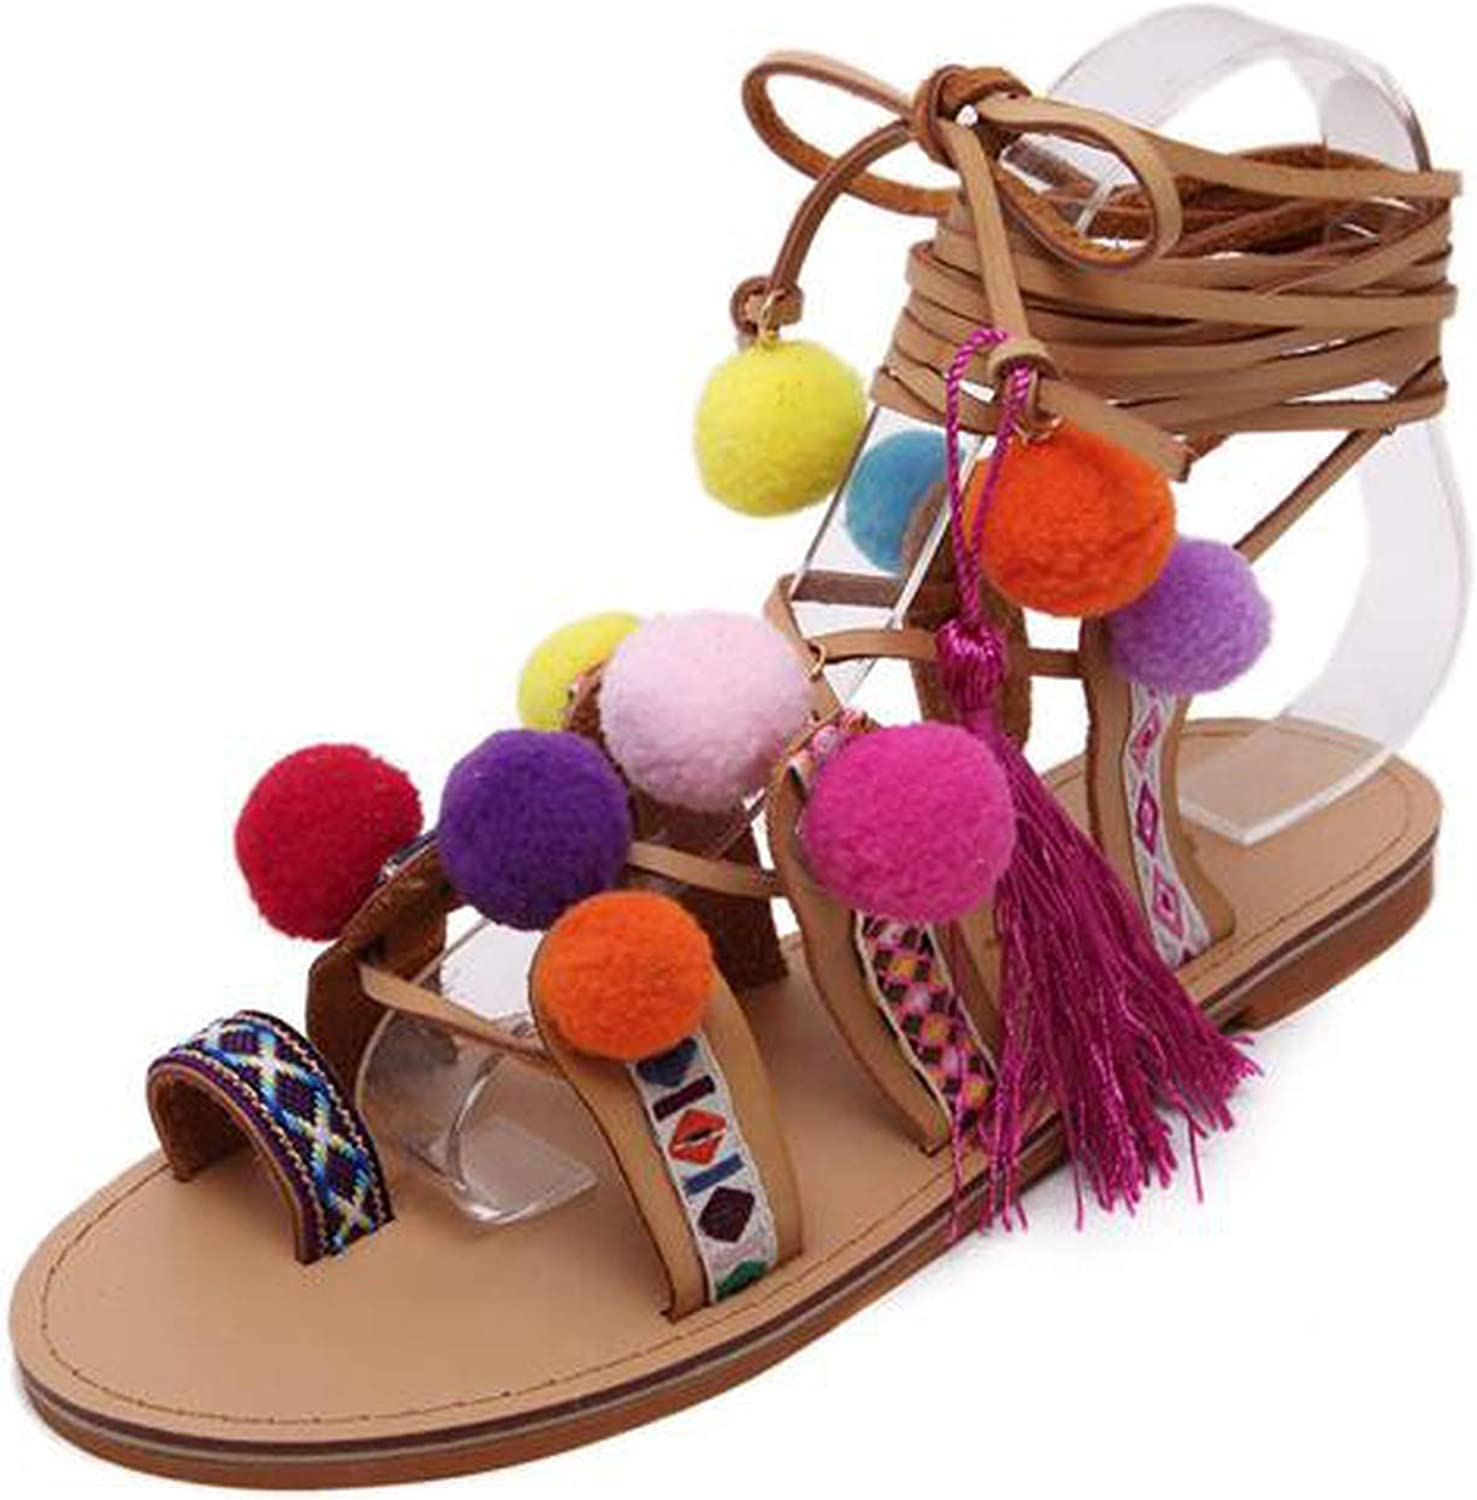 RAINIE002 Plus Size 35-40 Ethnic Bohemiansummer Woman Pompon Sandals Roman Strappy Knee High Embroidered Tassel shoes